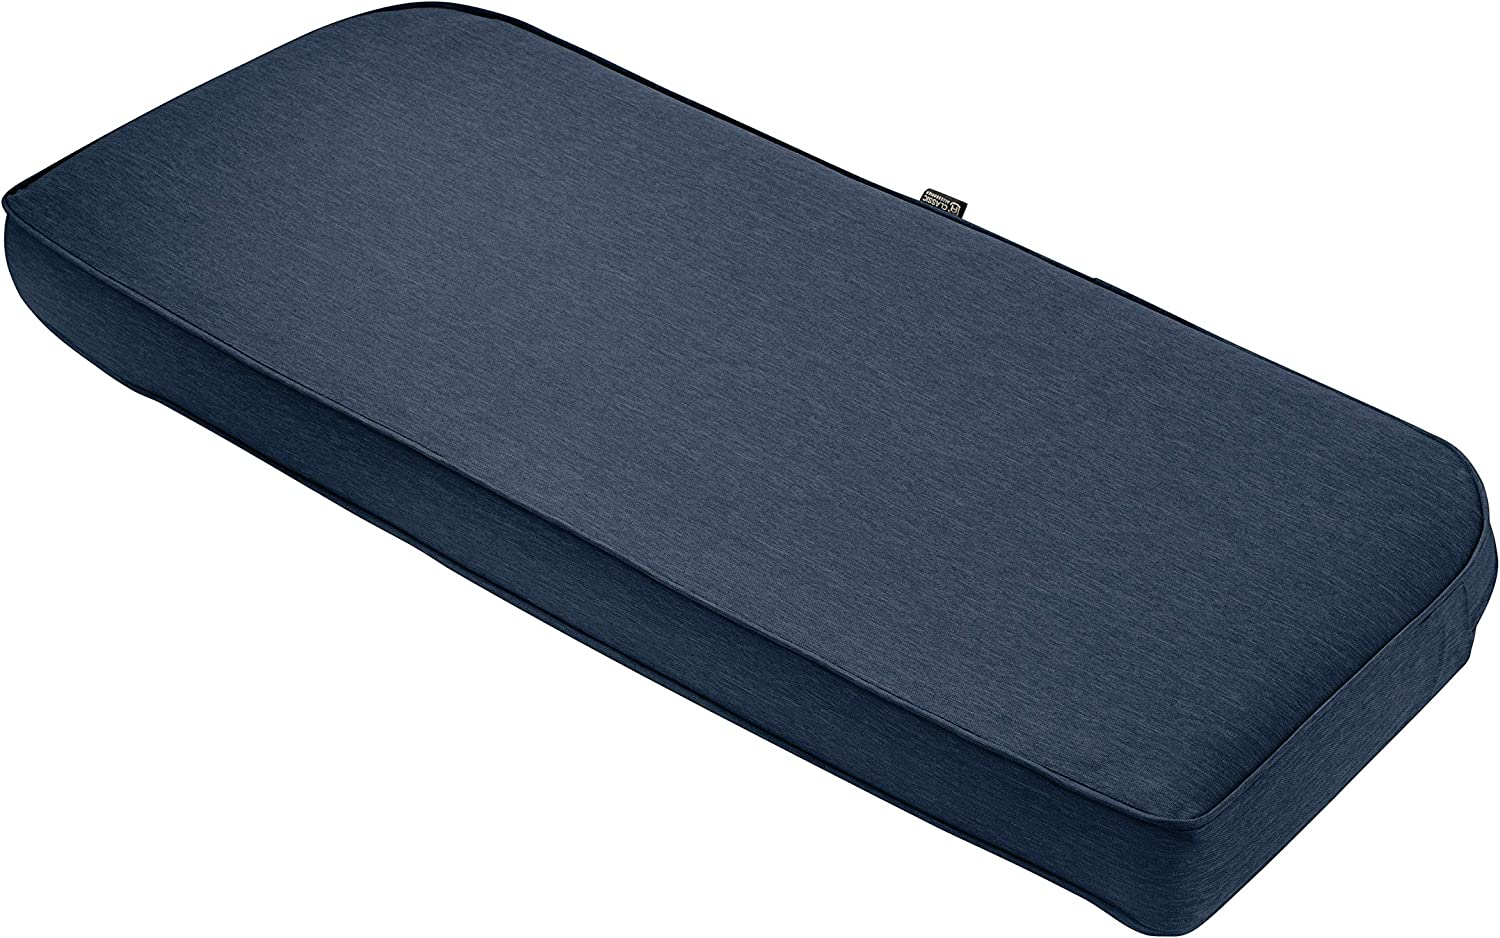 "Classic Accessories Montlake Bench Cont. Cushion Foam & Slip Cover, Heather Indigo, 41x18x3"" Thick"